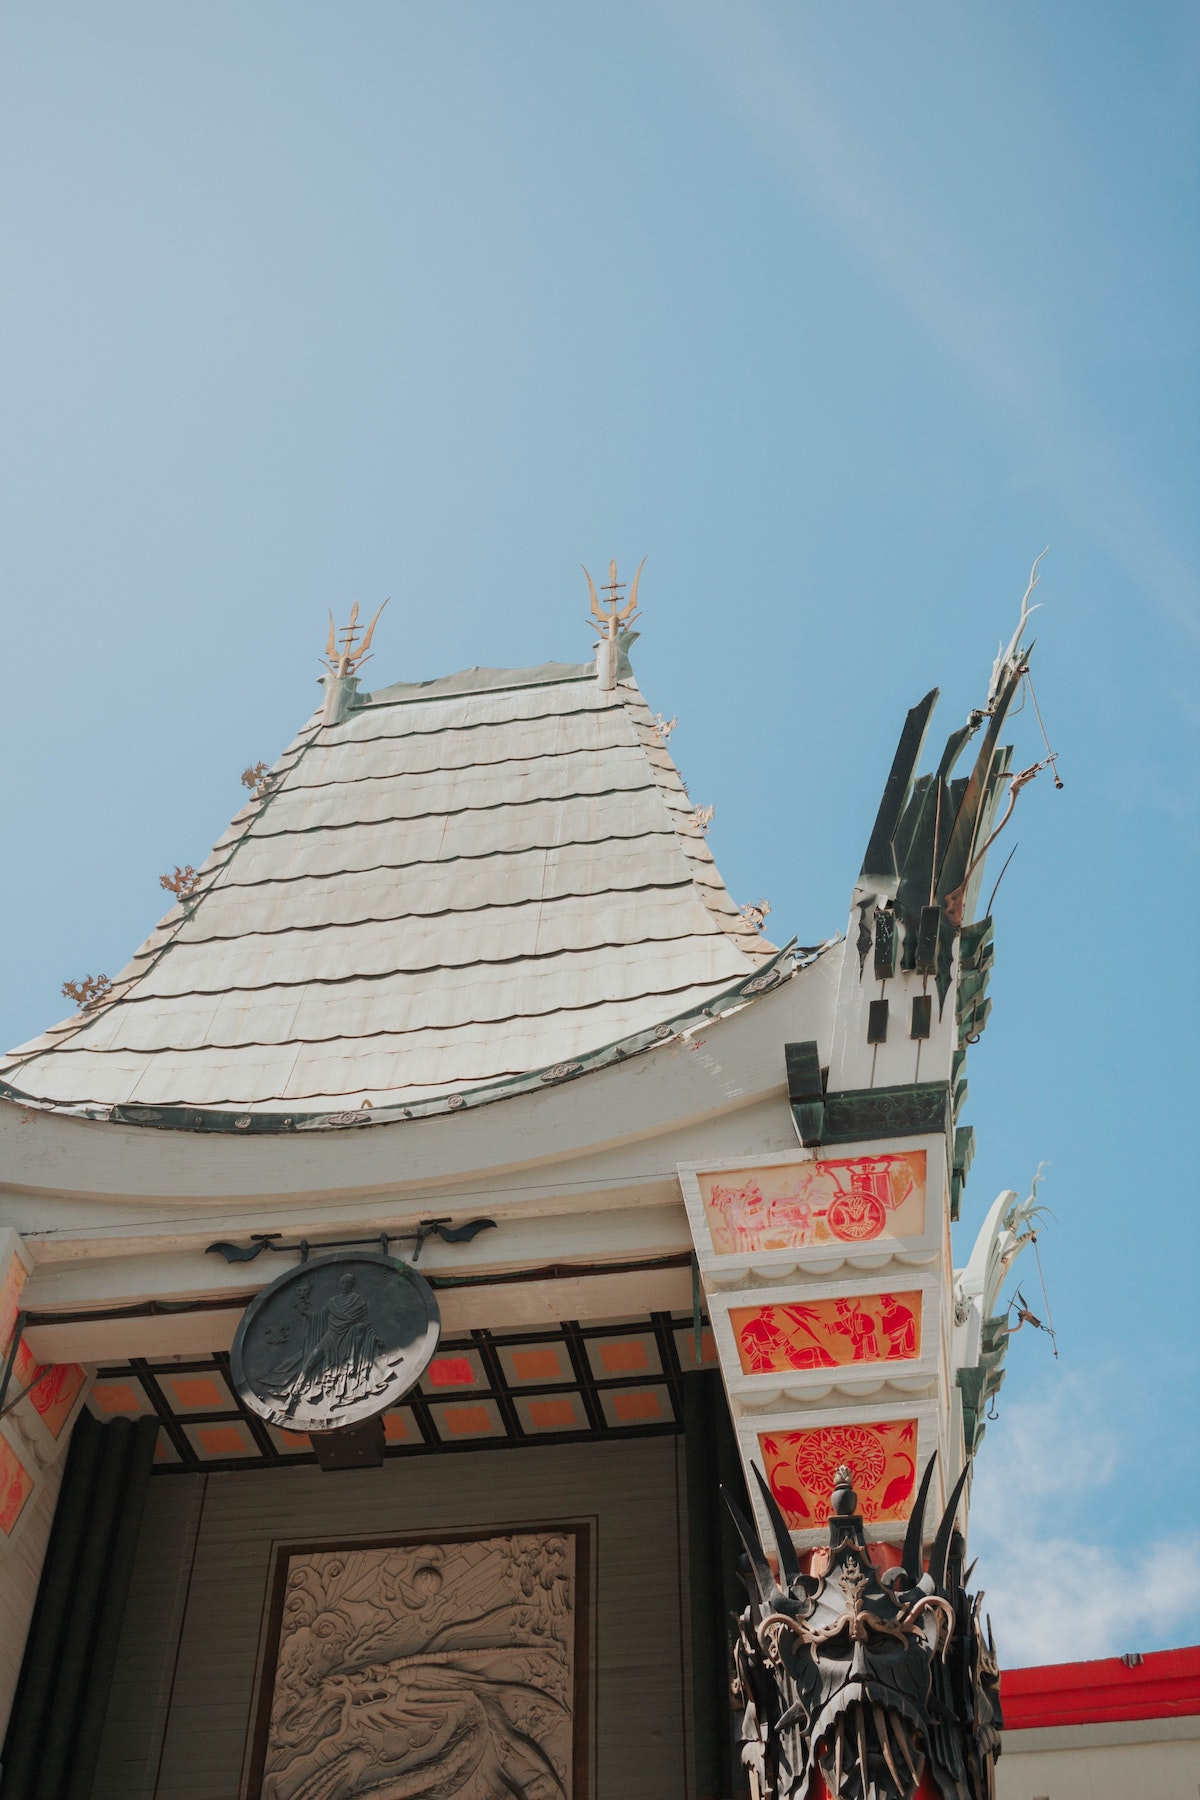 You don't need a separate Hollywood film permit to shoot outside the Chinese Theater.